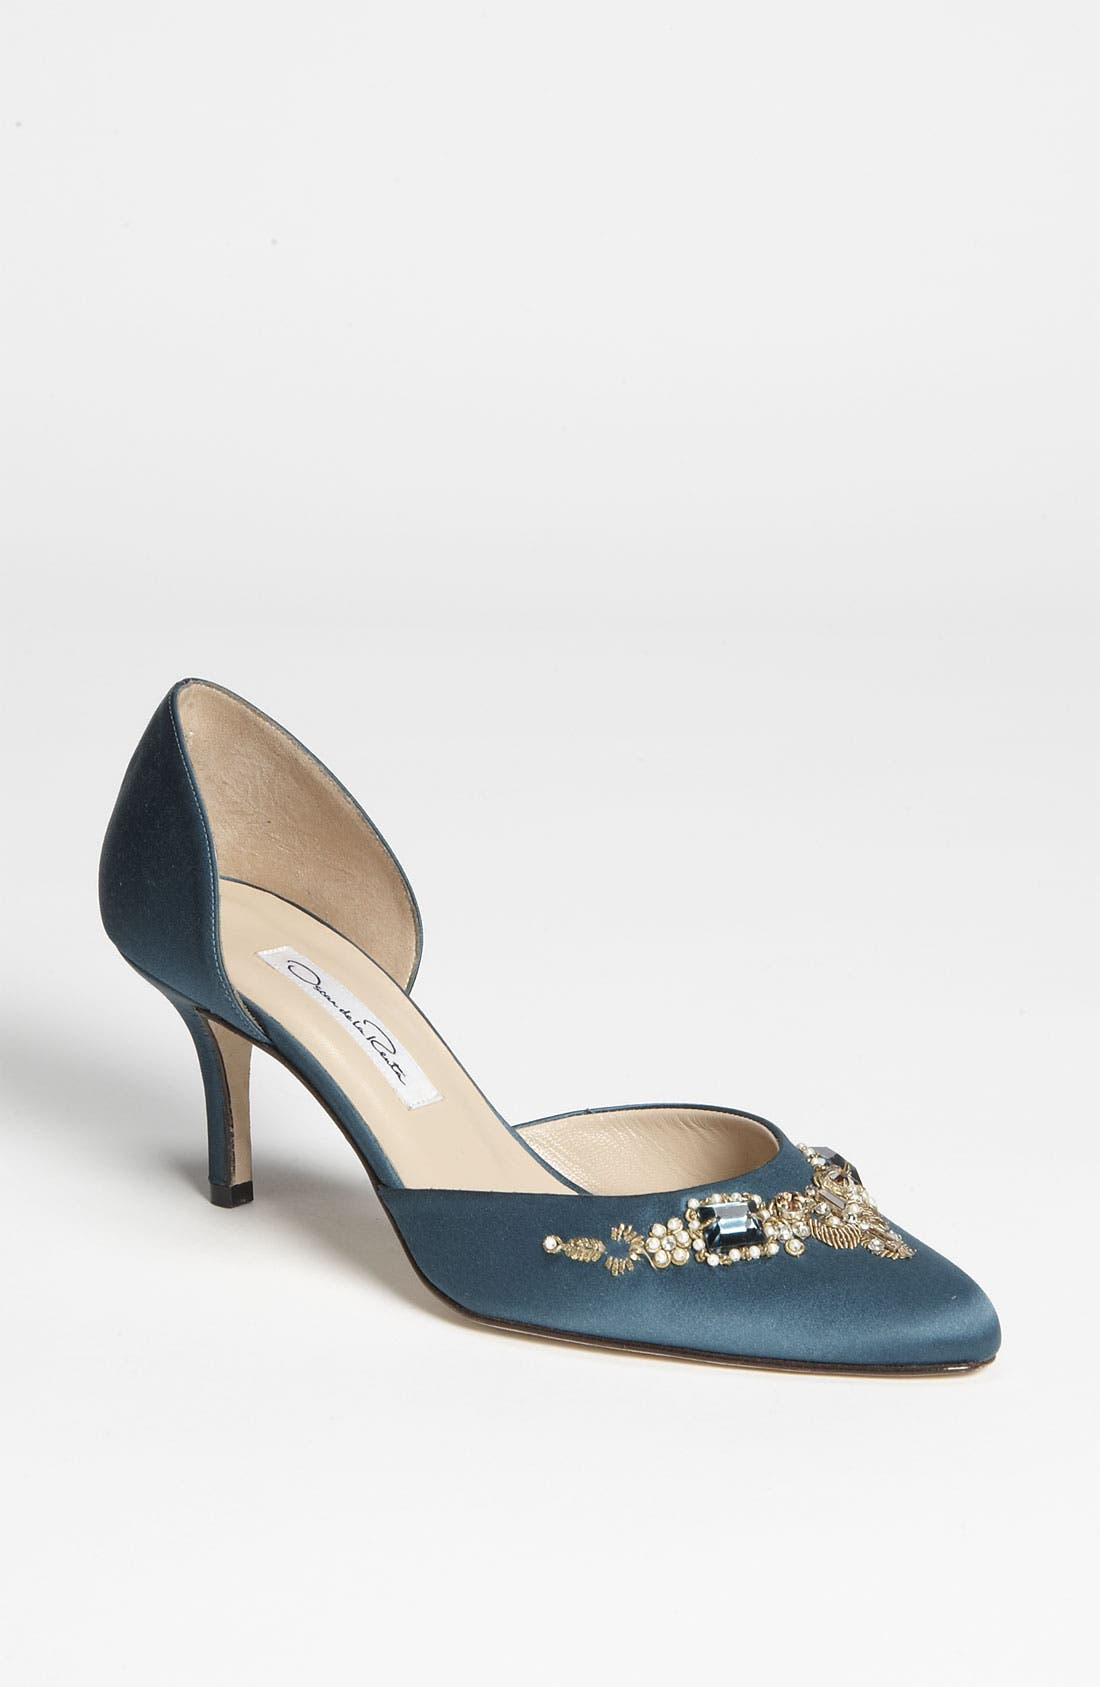 Alternate Image 1 Selected - Oscar de la Renta 'Binato' Beaded Satin d'Orsay Pump